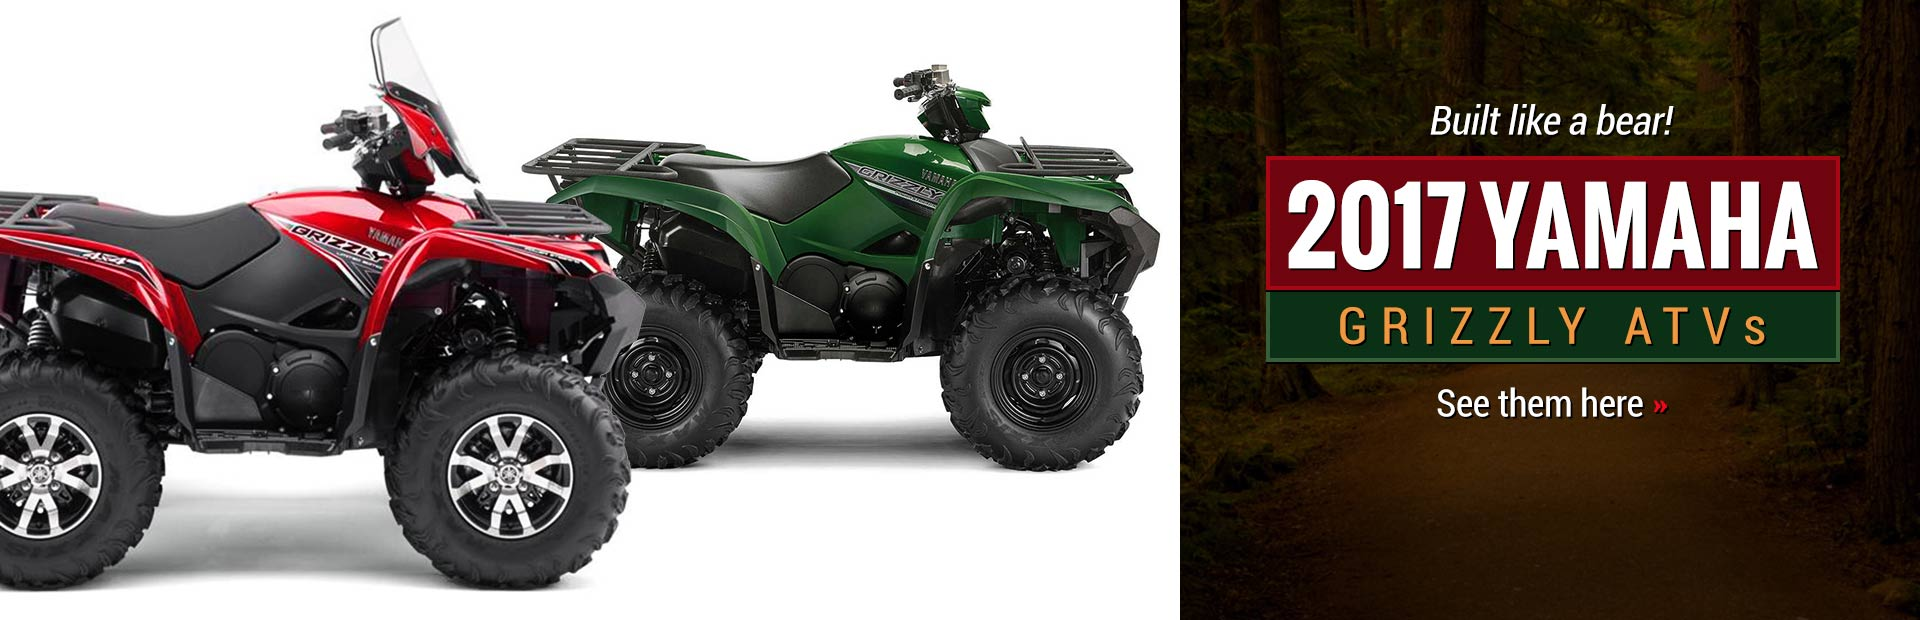 2017 Yamaha Grizzly ATVs: Click here to view the models.